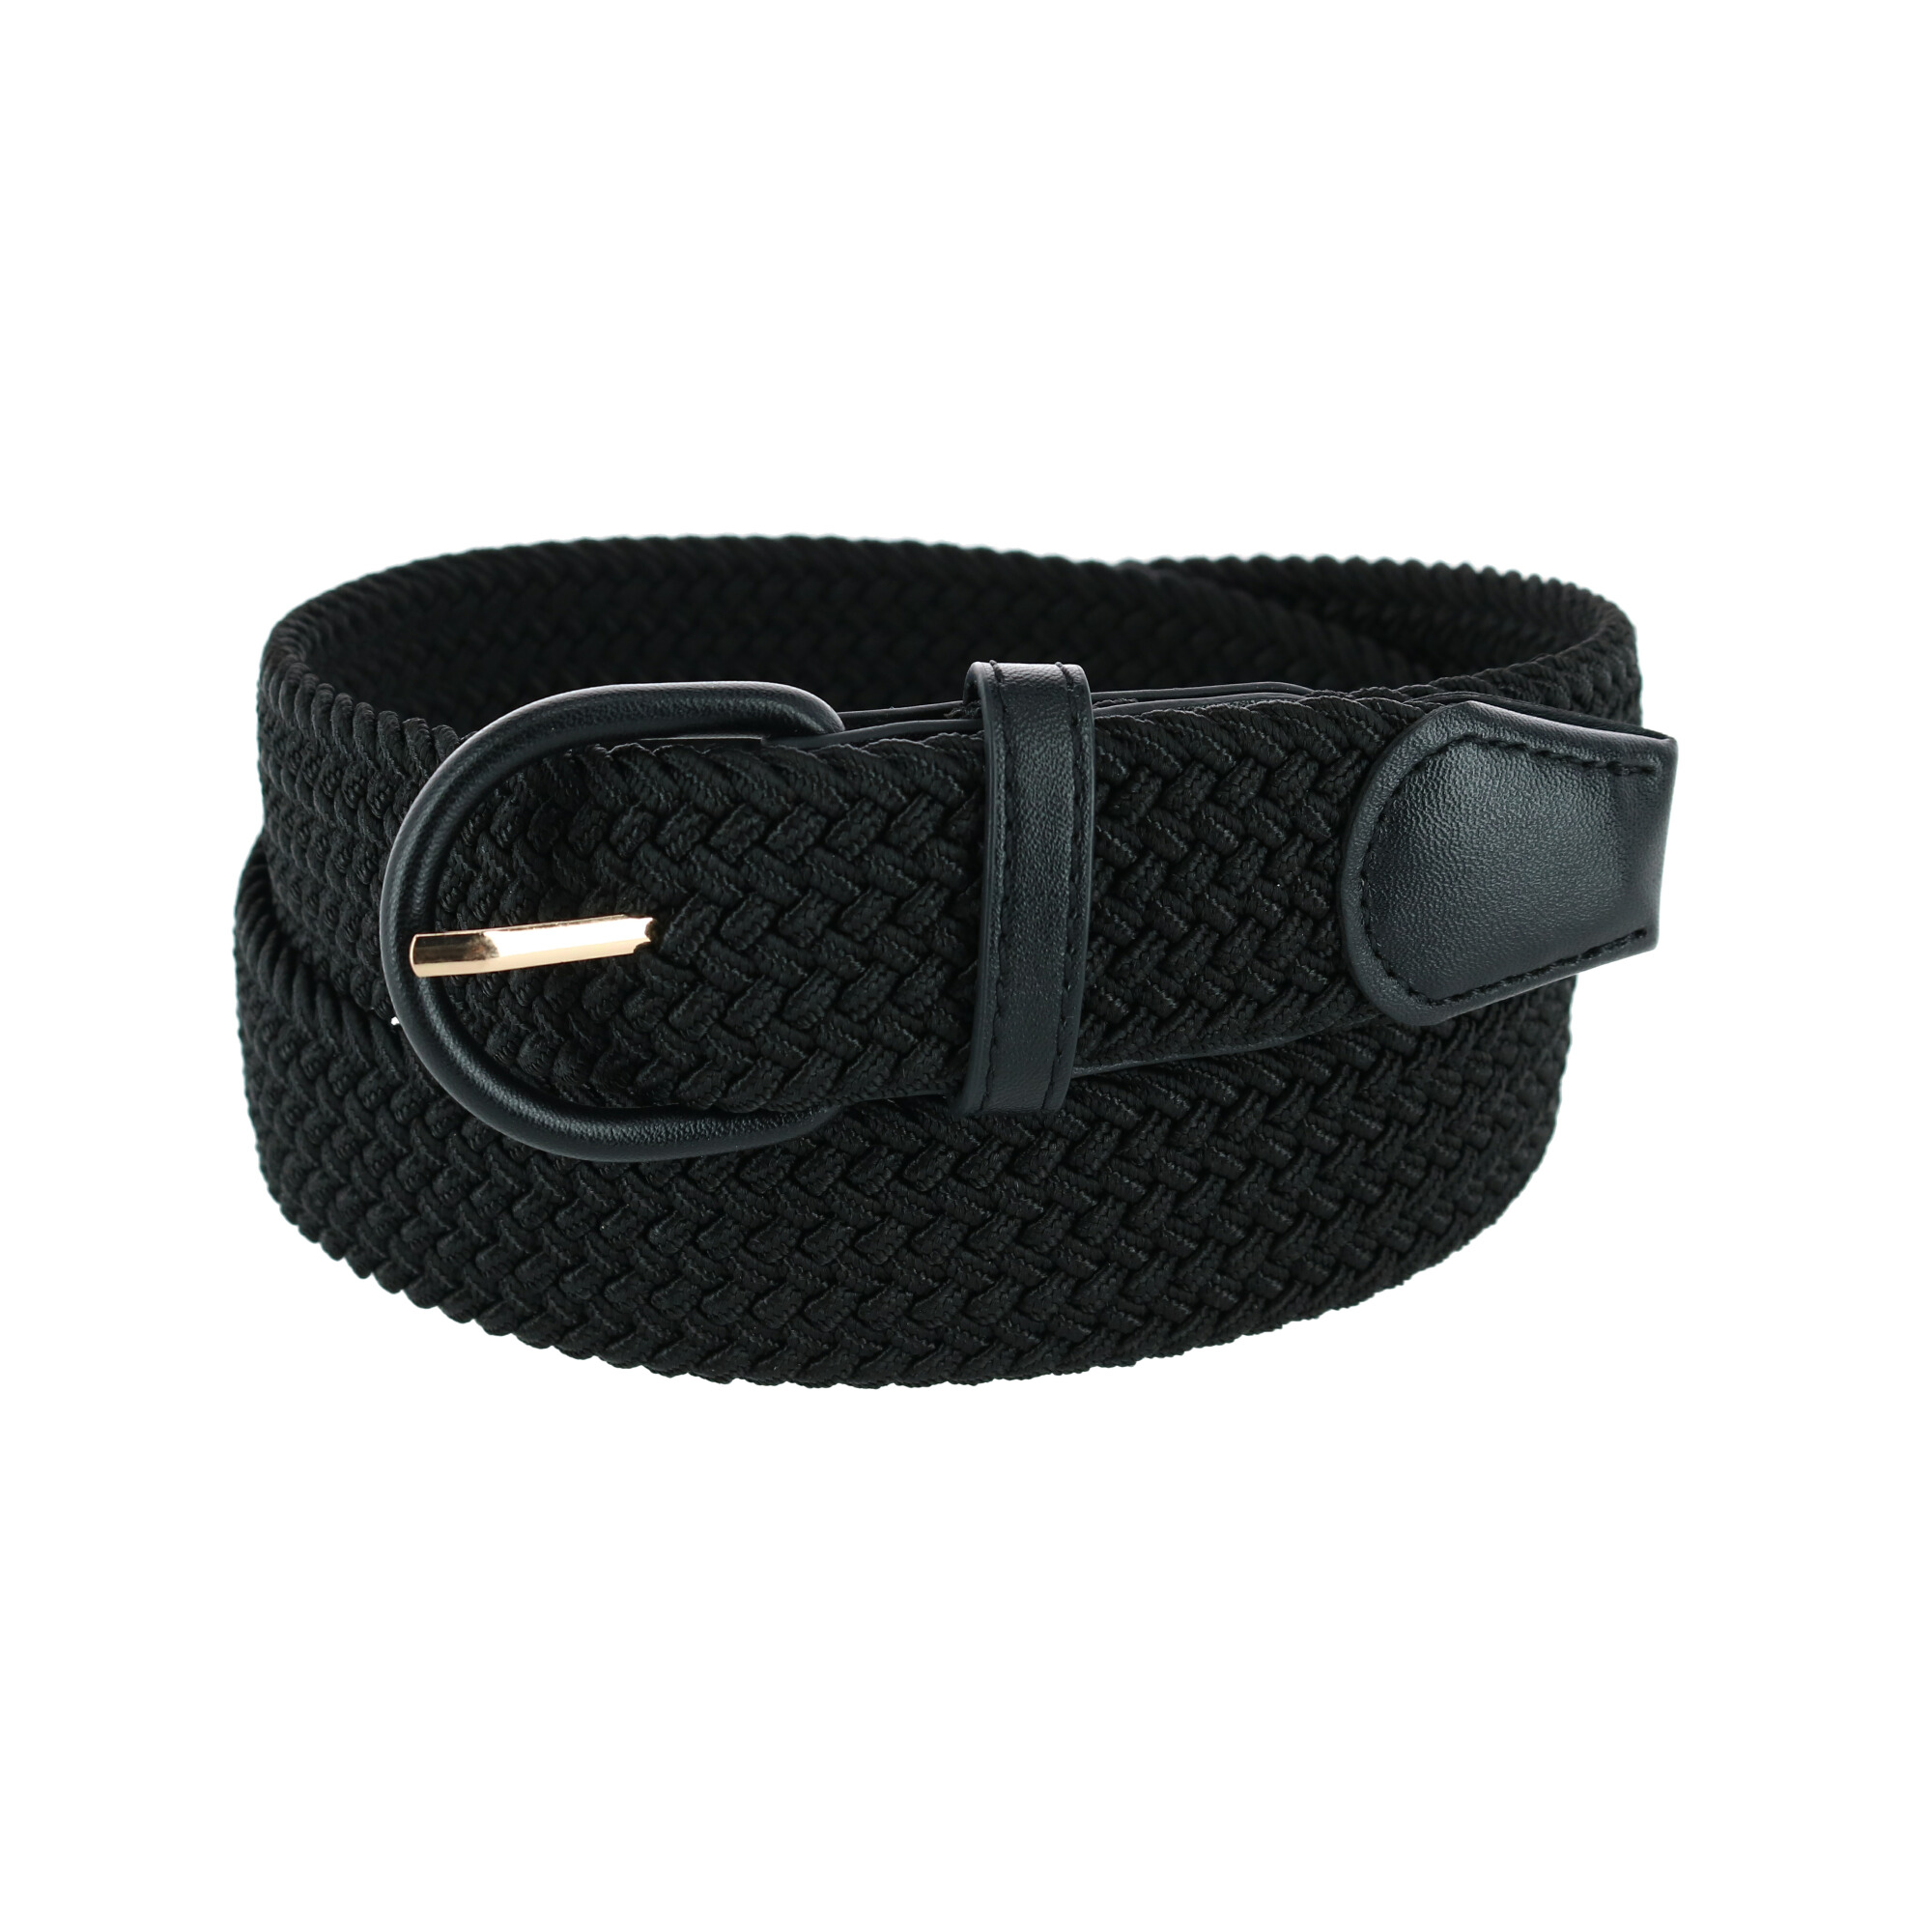 New CTM Men/'s Elastic Braided Belt with Covered Buckle Big /& Tall Available